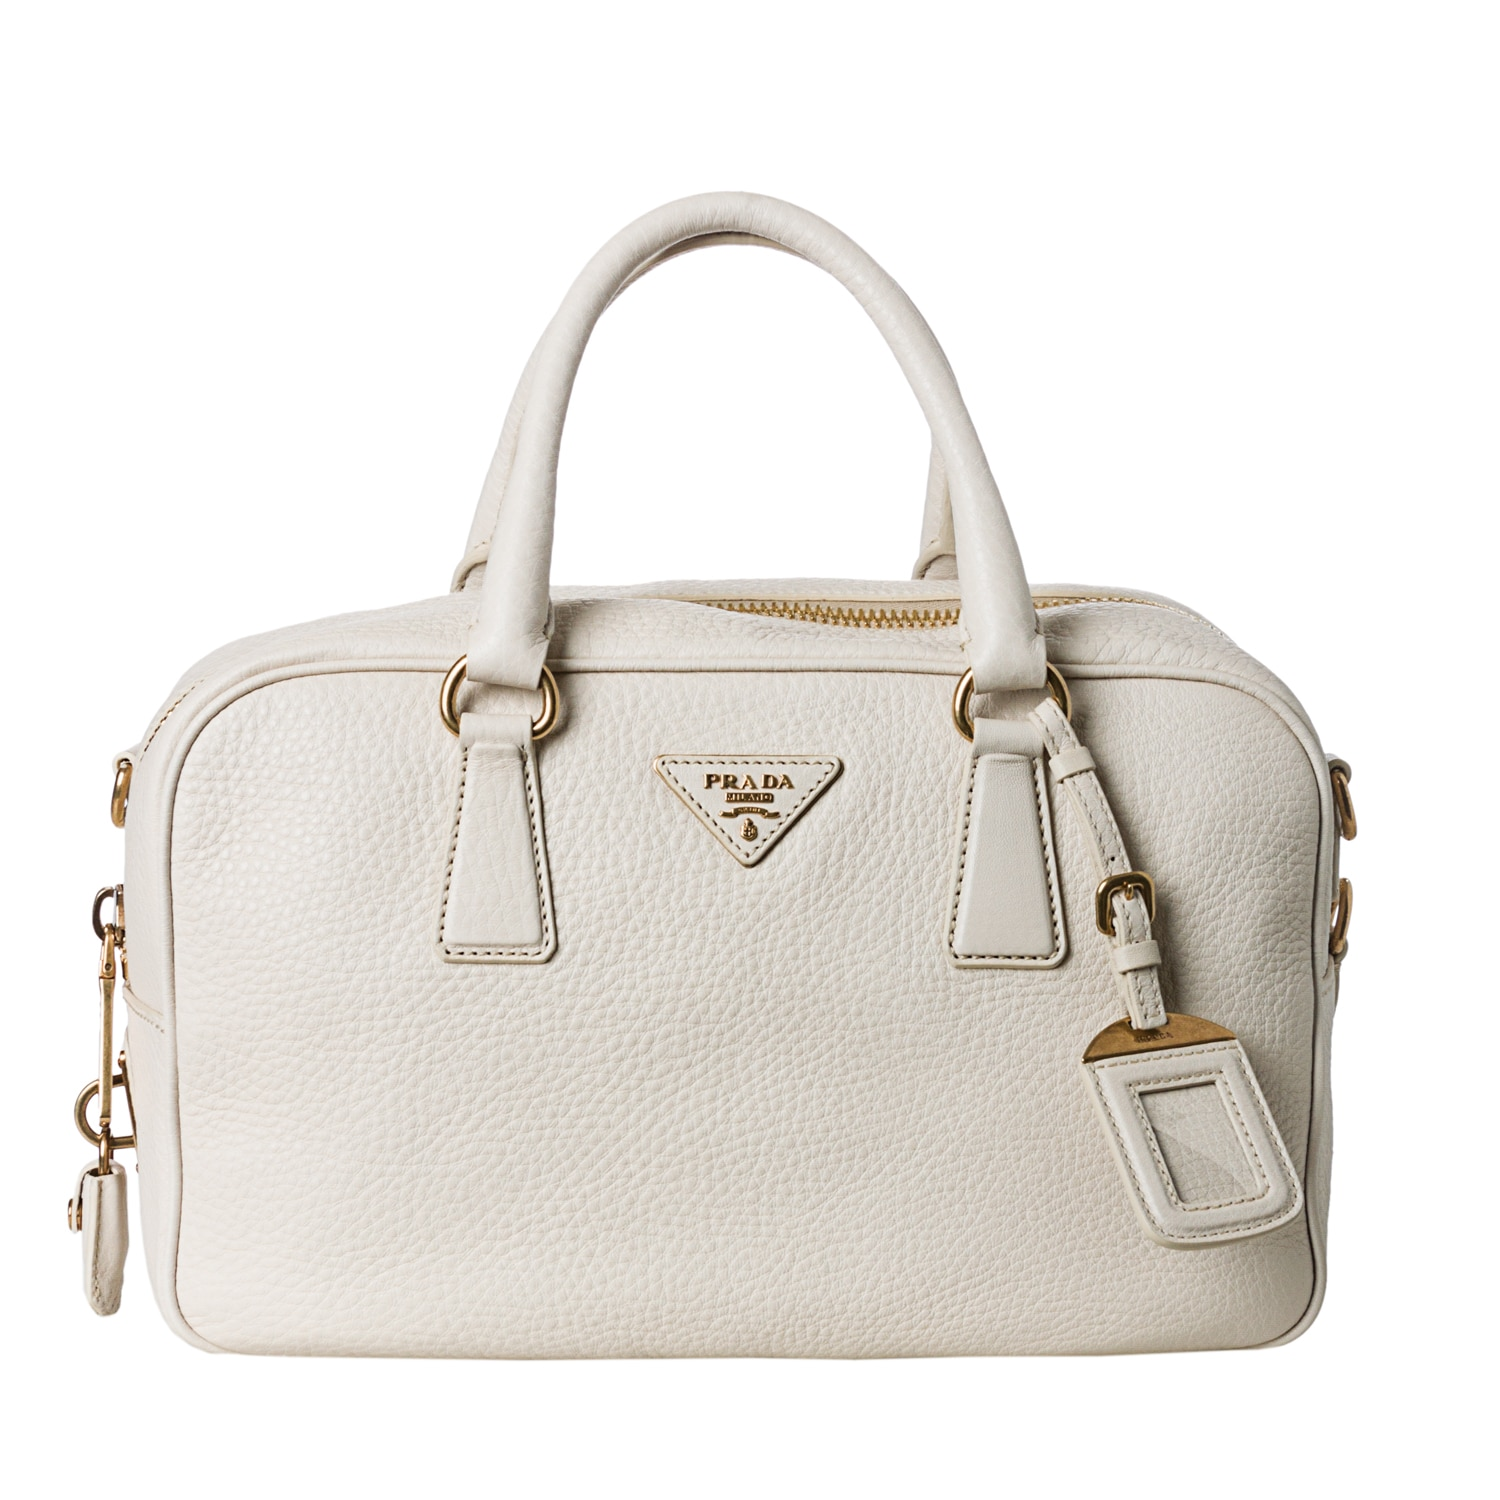 c95e68af2a95 ... reduced shop prada womens vitello daino white pebbled leather satchel  bag free shipping today overstock 7655019